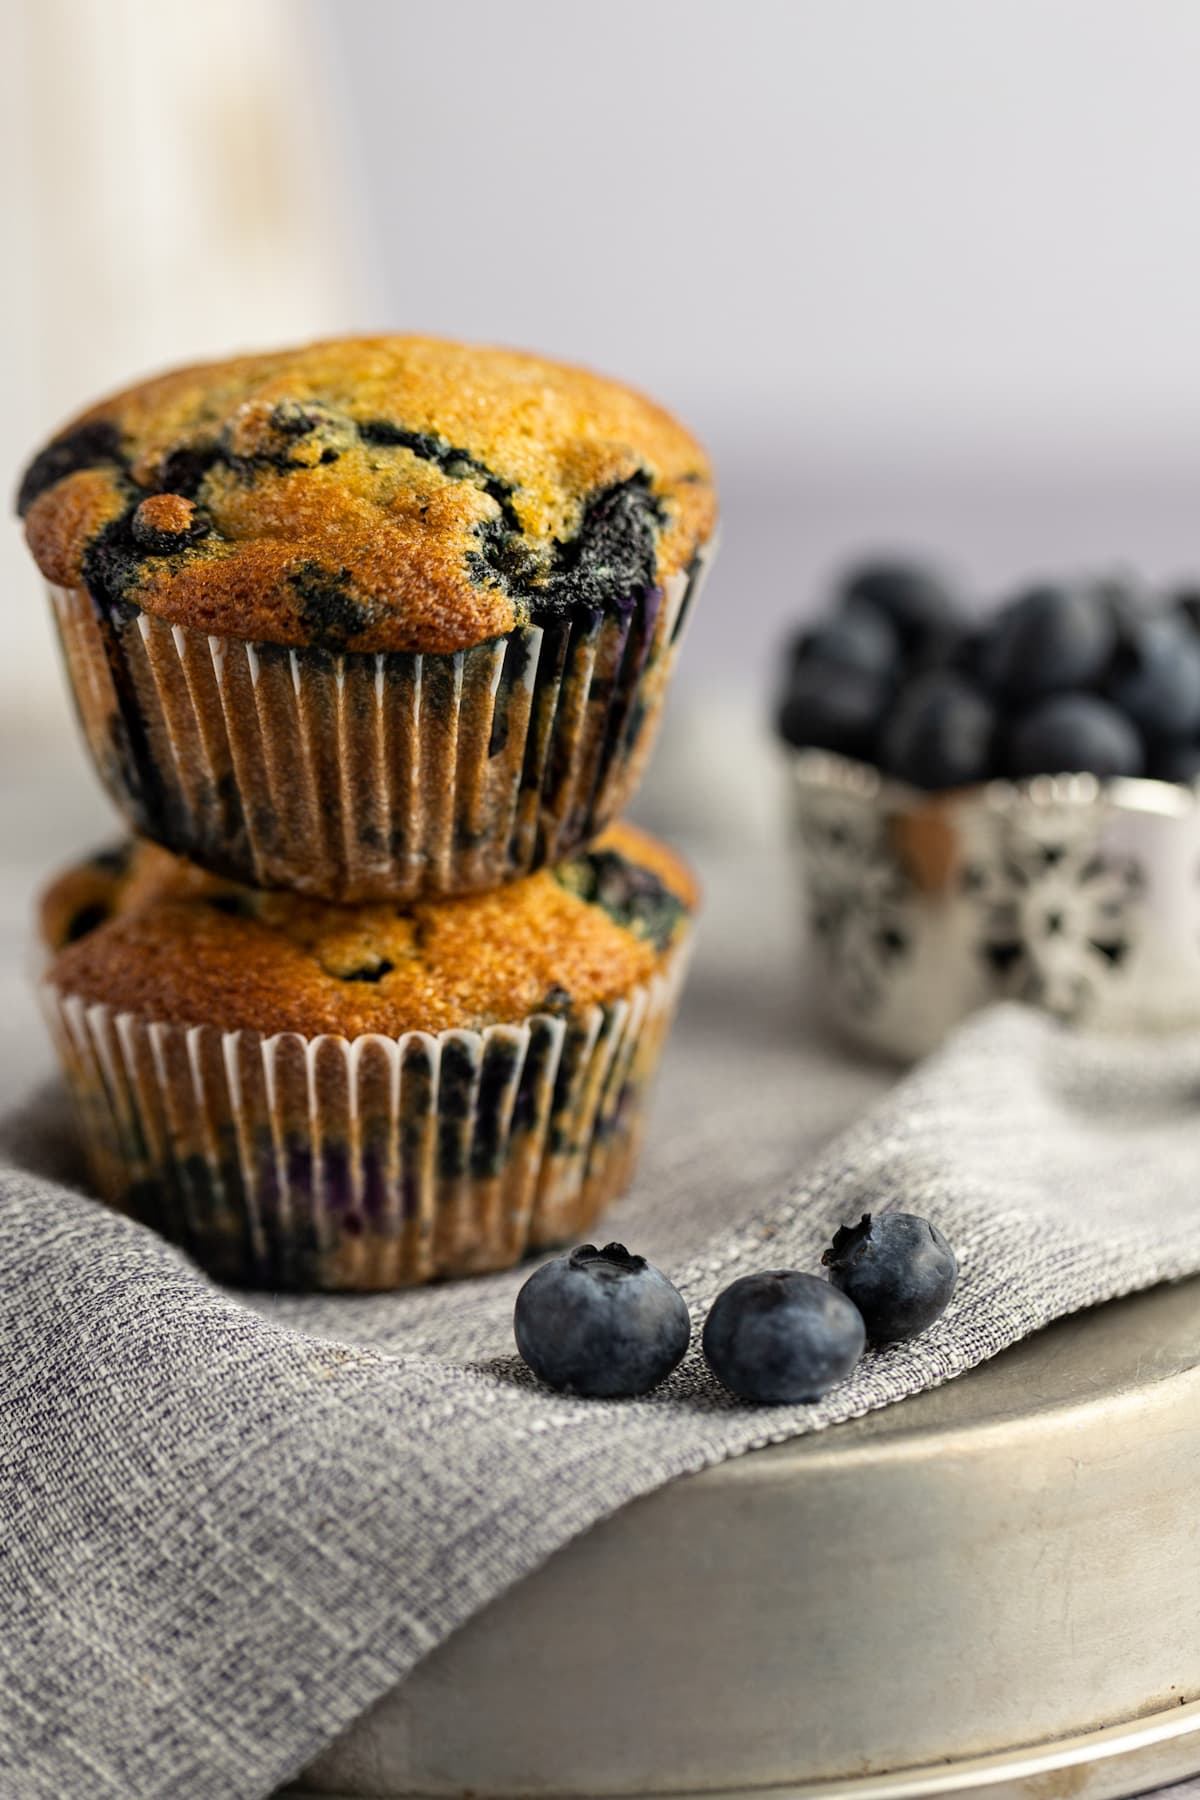 Two muffins stacked on top of each other on a grey napkin on a metal tin, with three fresh blueberries beside them.